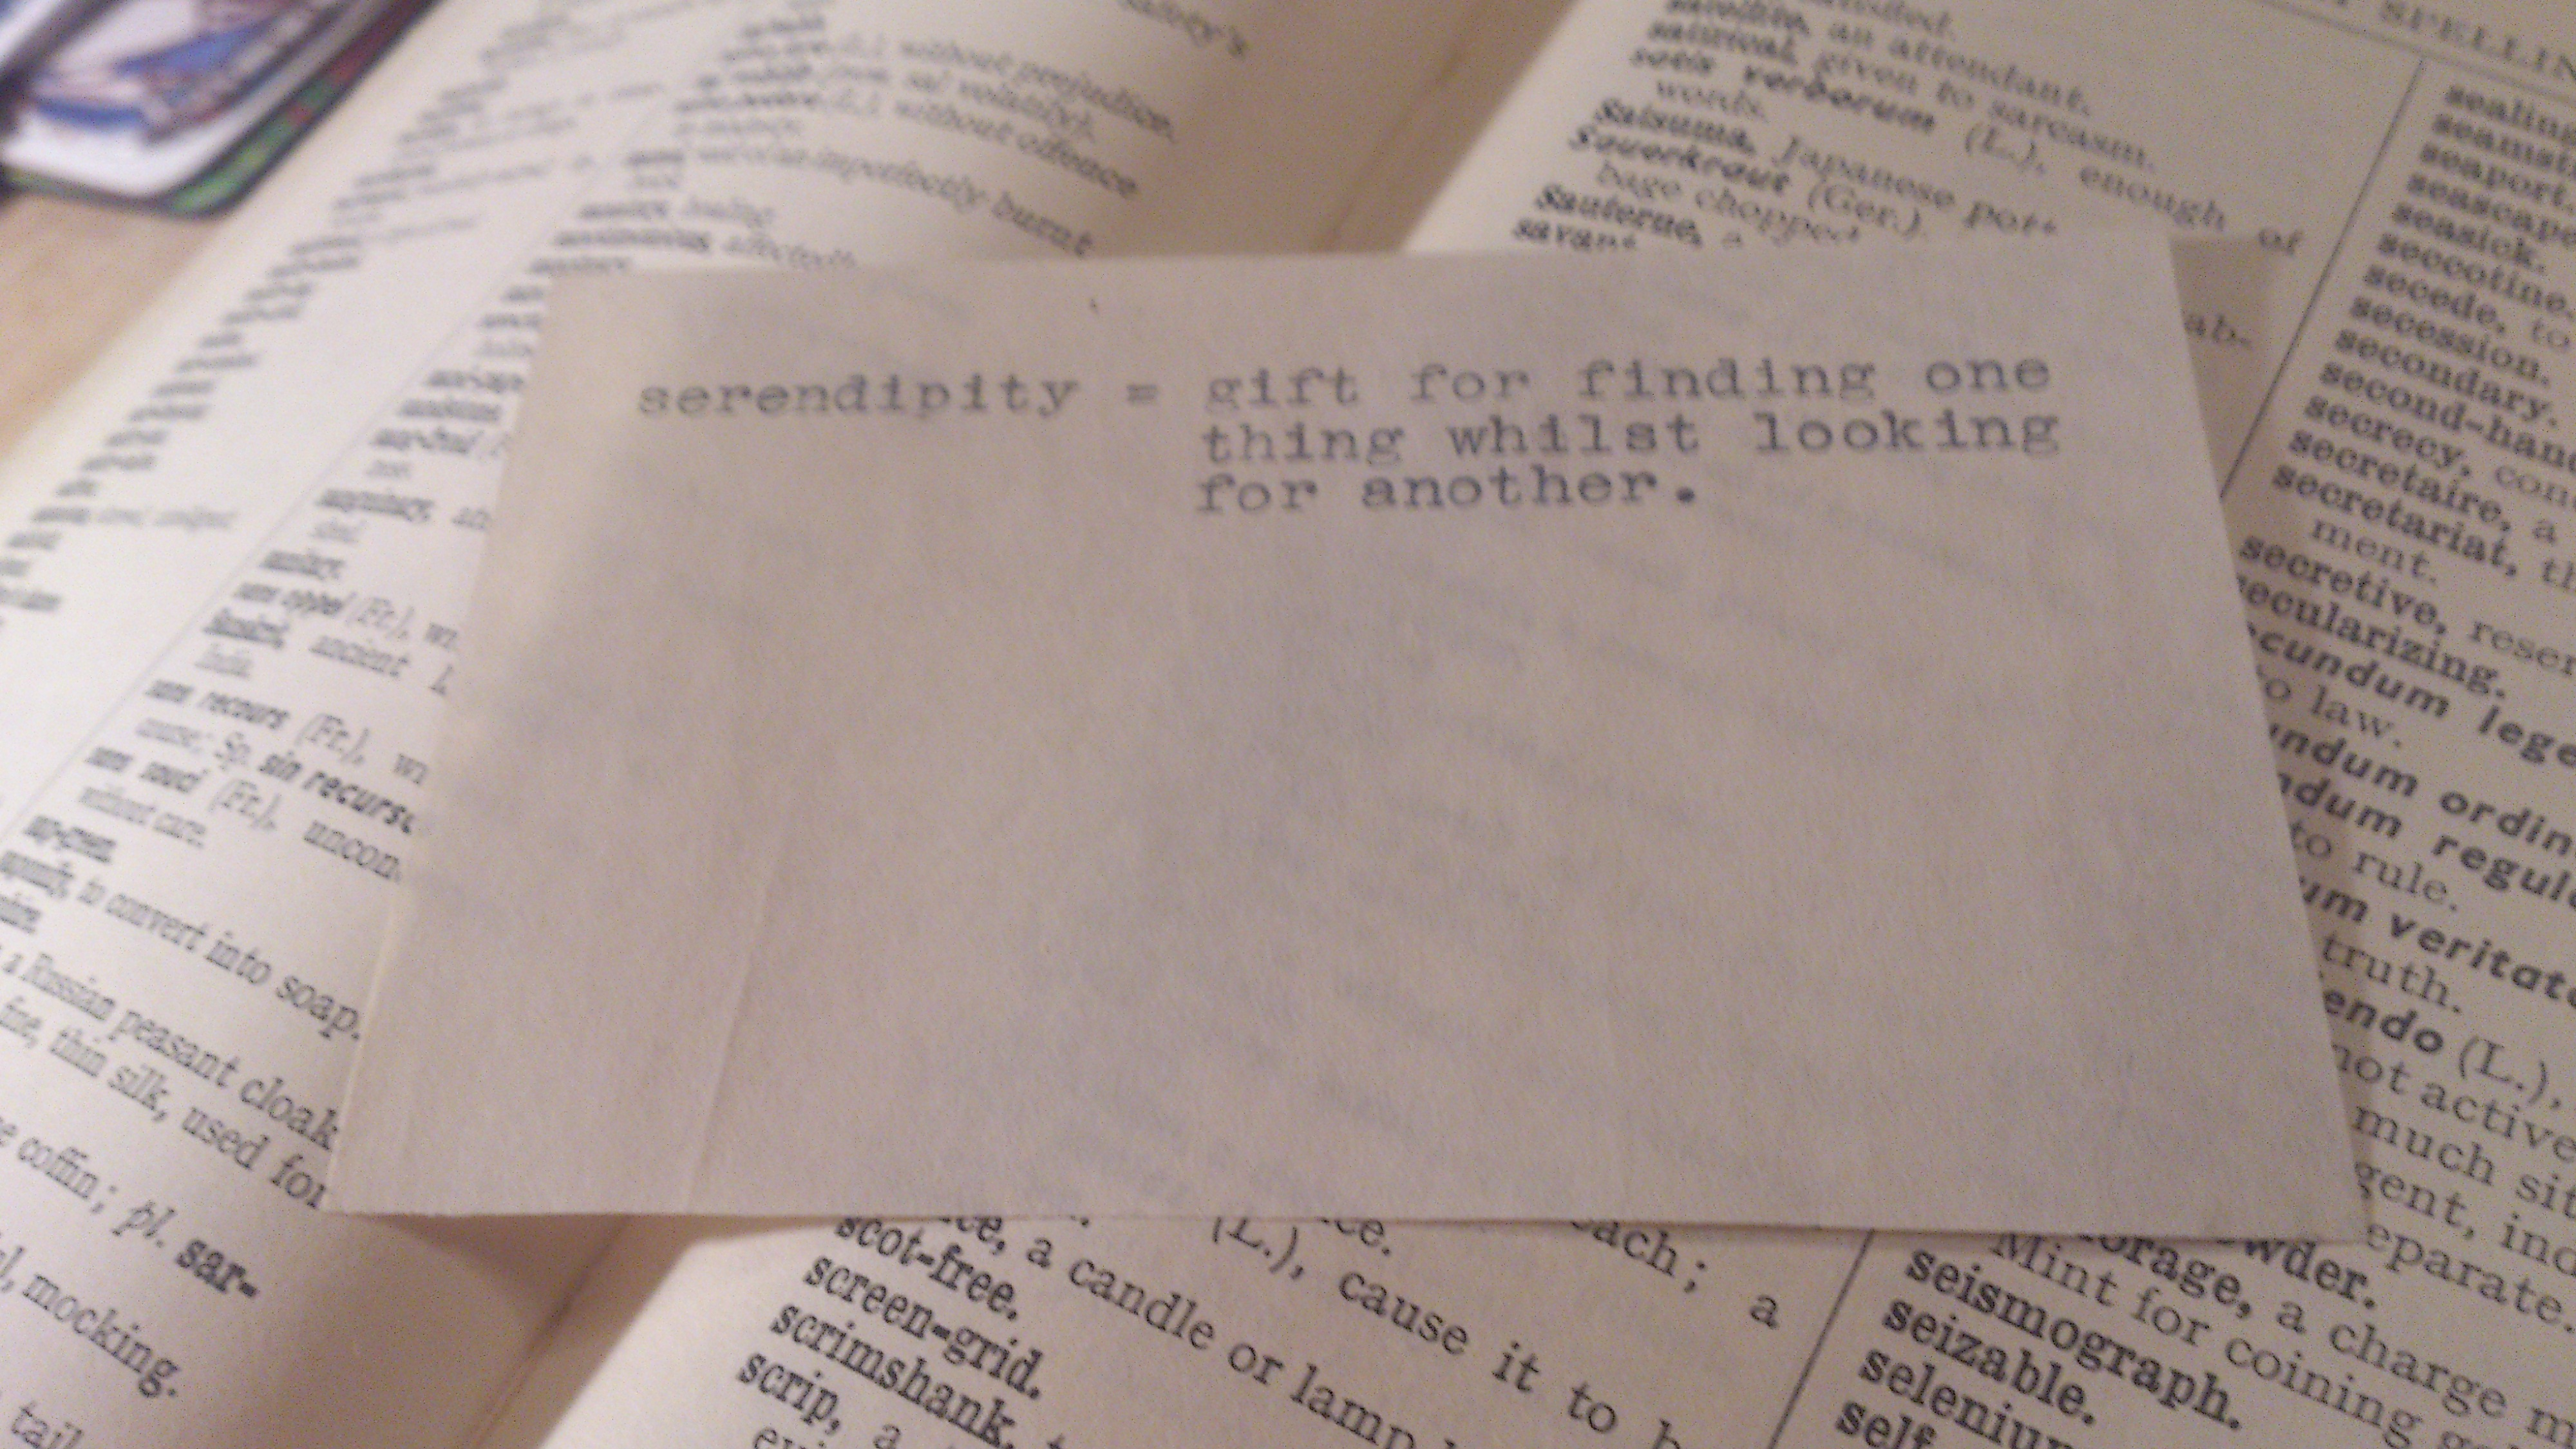 Serendipity in the pages of a Typist's Desk Book